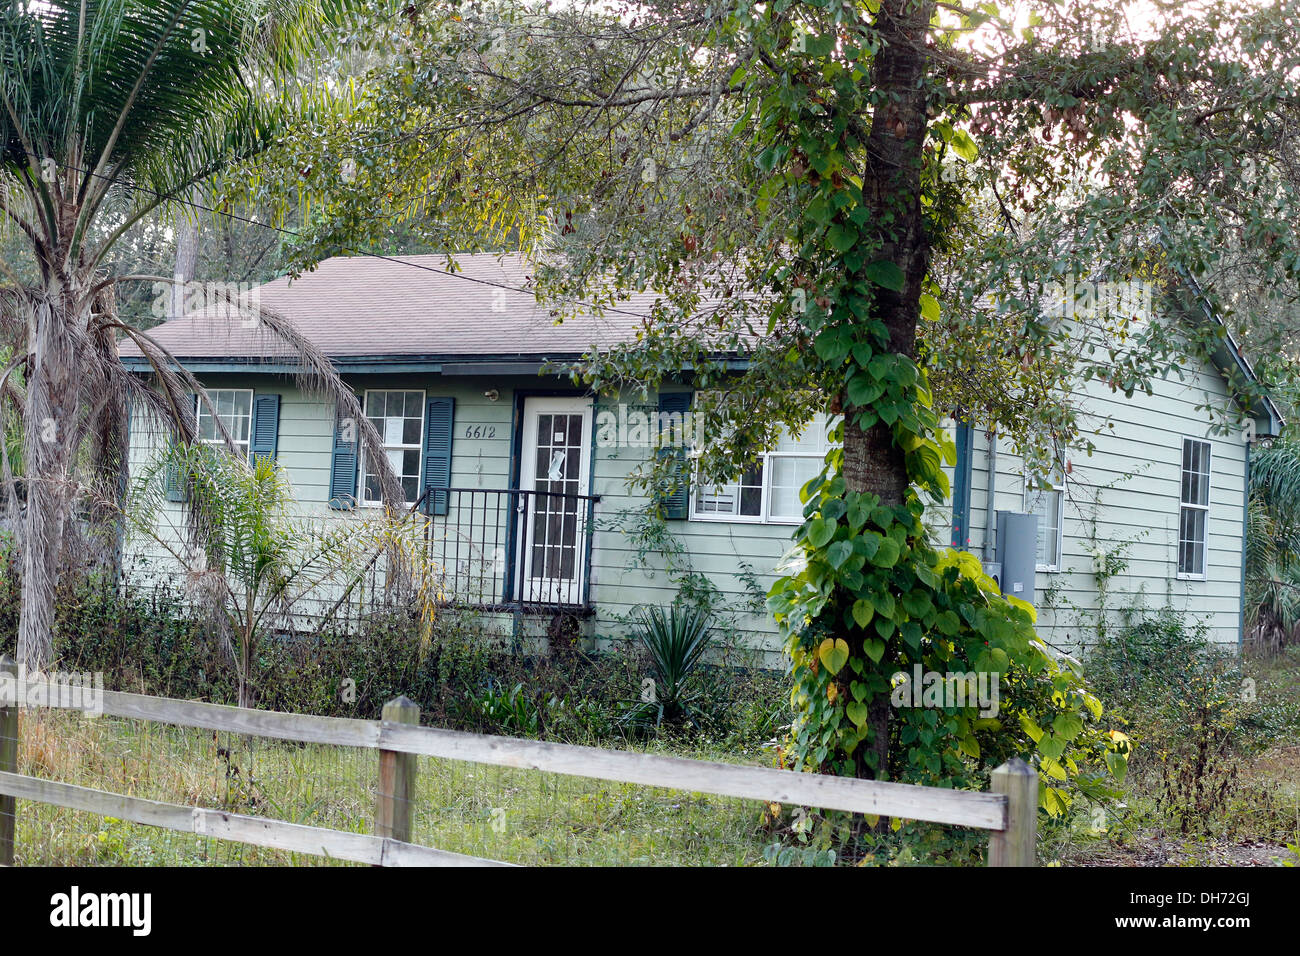 Small run down house now over grown on a backwoods road in Florida, November 2013 - Stock Image